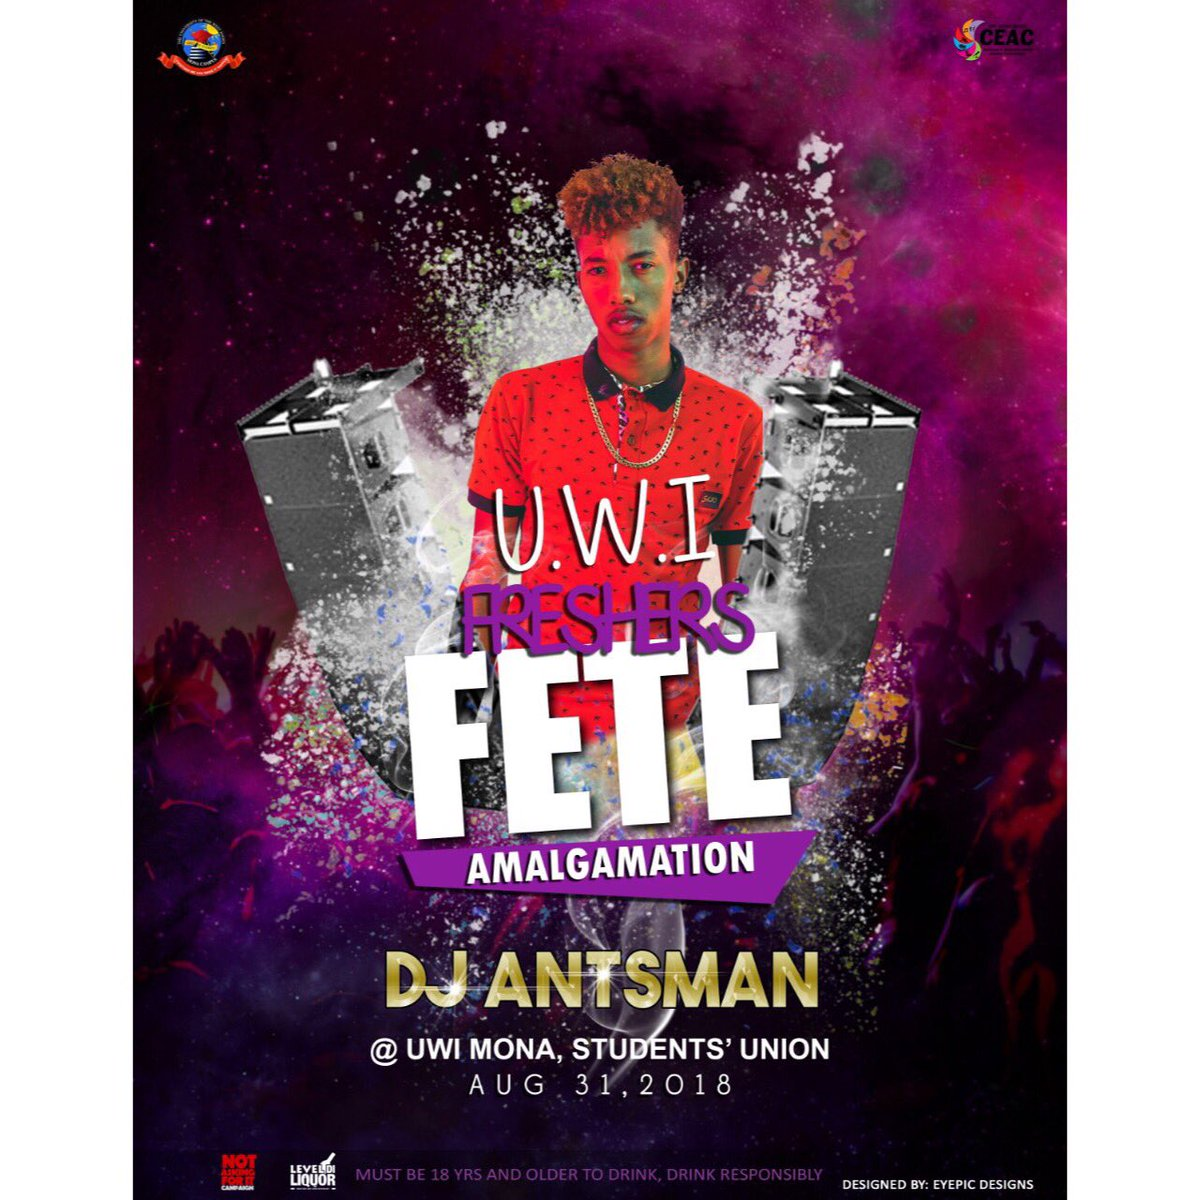 2018 YVA's recipient of the Favourite DJ award is coming to turn up the vybz  at the Students' Union. Don't miss the experience of the party coming alive on August 31 at Freshers' Fete with DJ Antsman .  #FreshersFete #Amalgamation<br>http://pic.twitter.com/9ar5JO0zd3